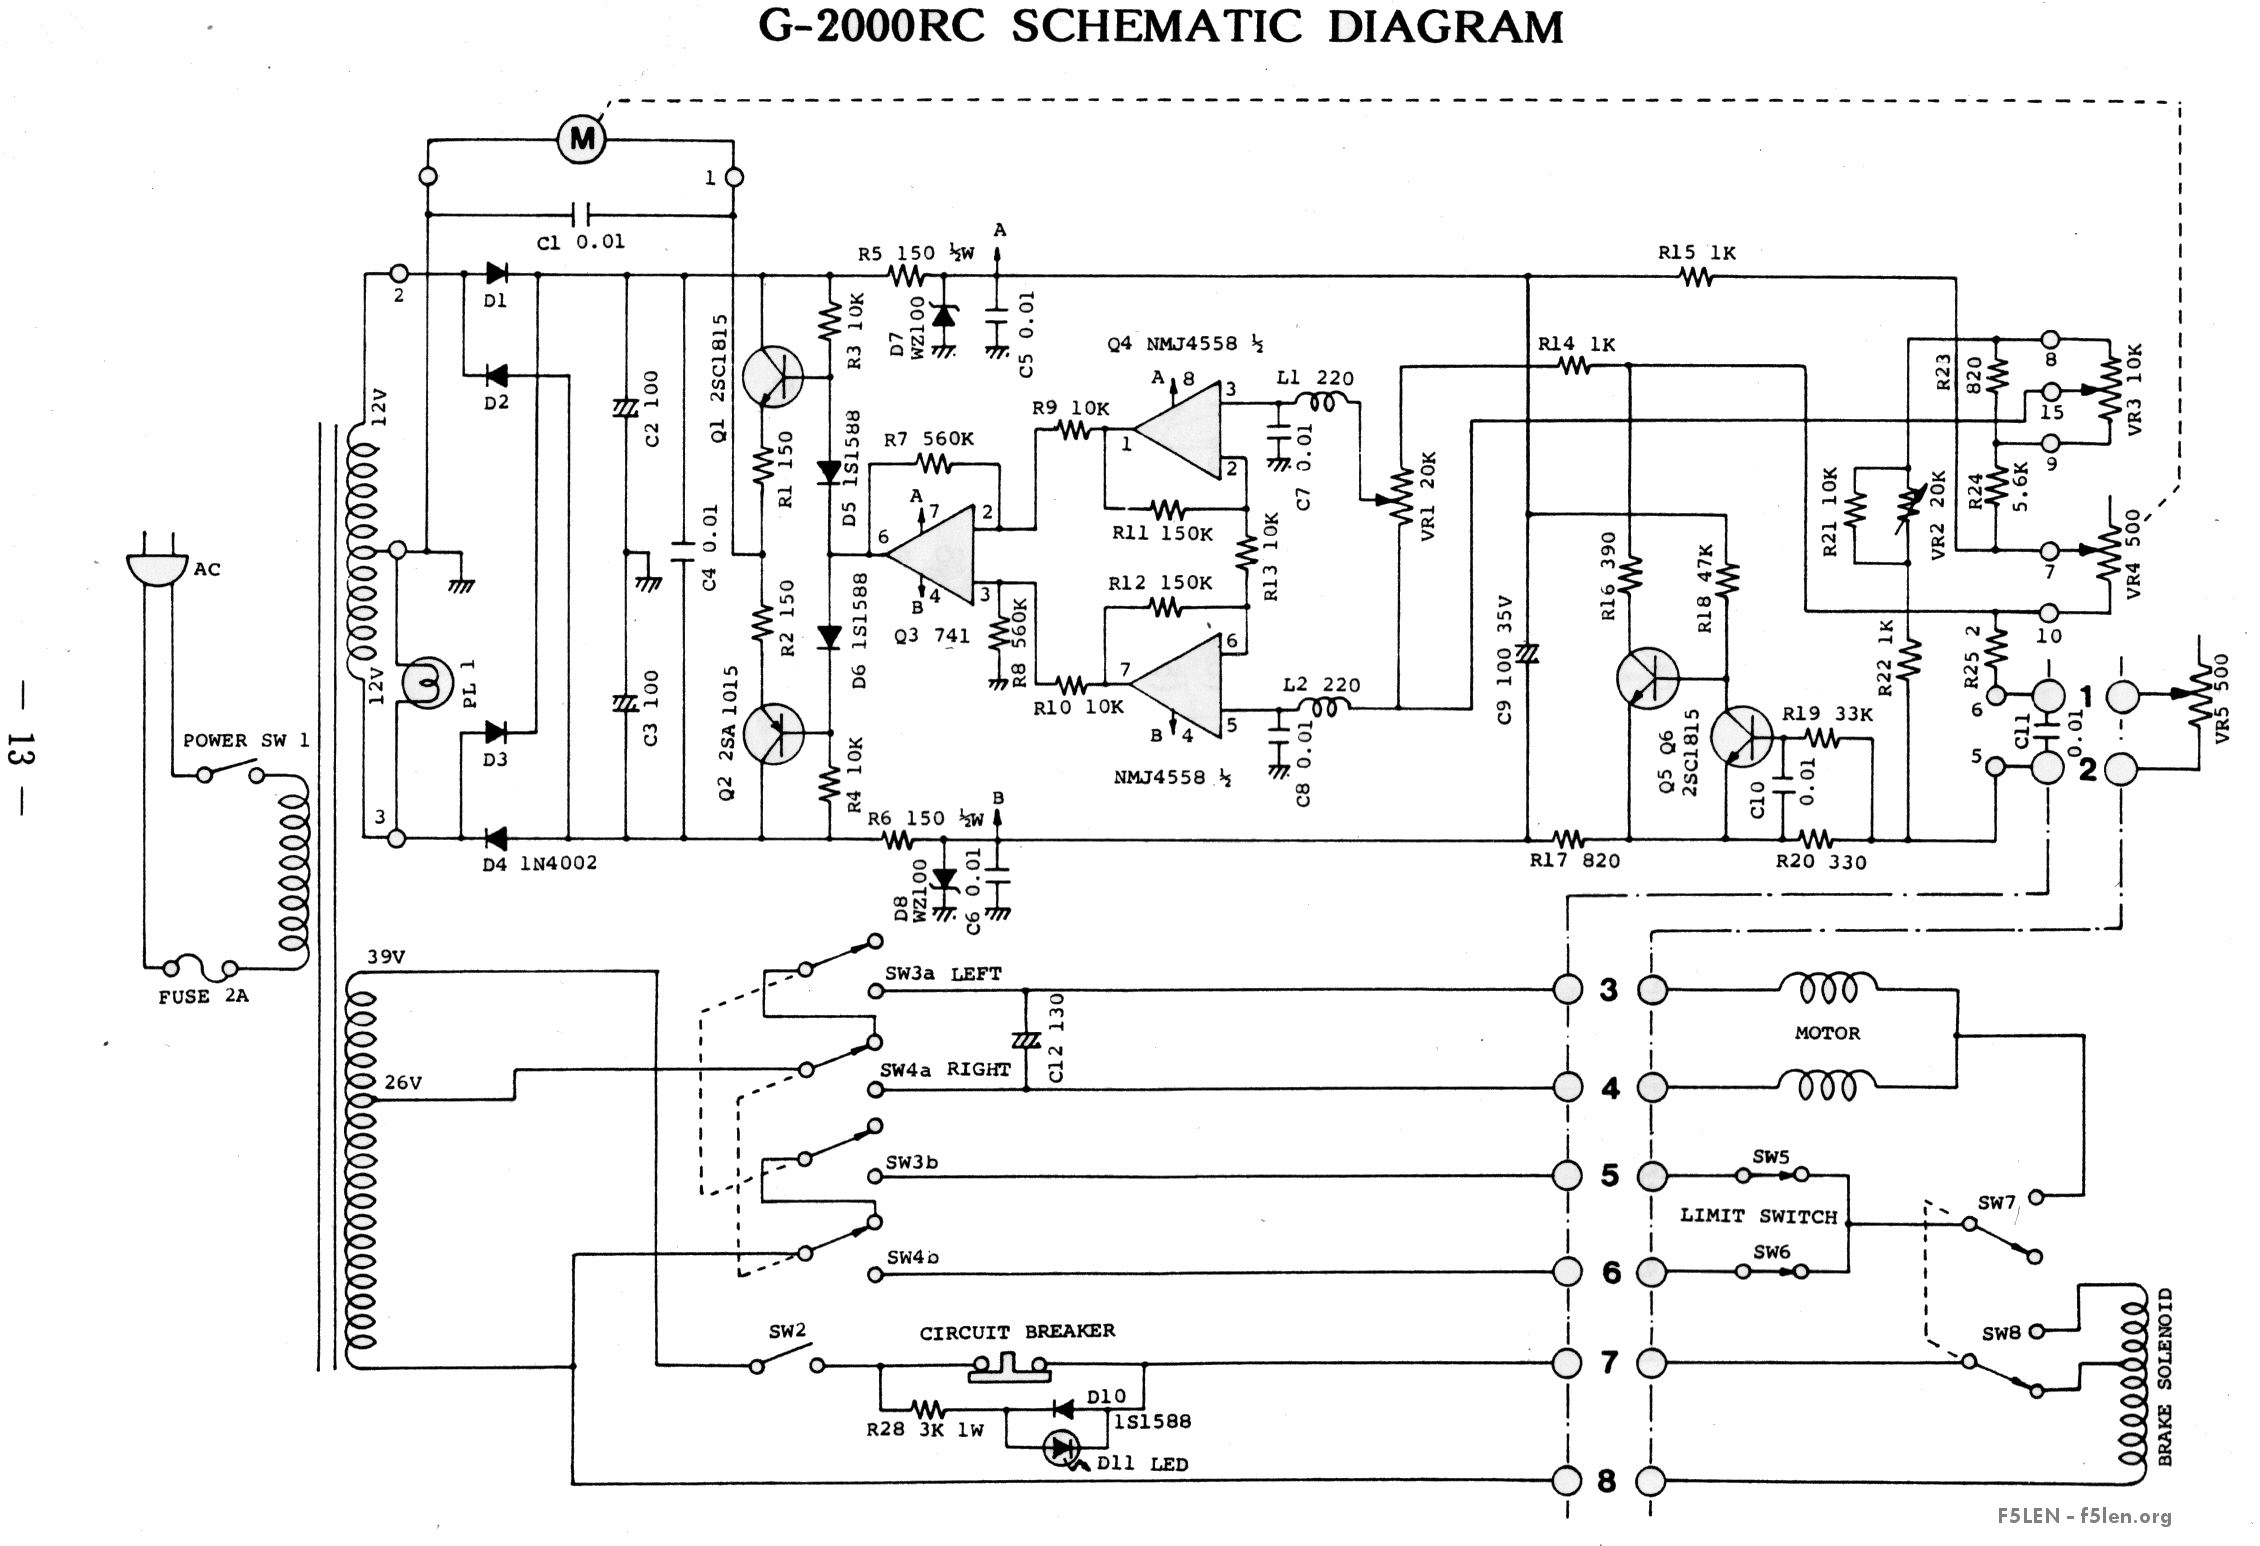 g-2000rc_schematic